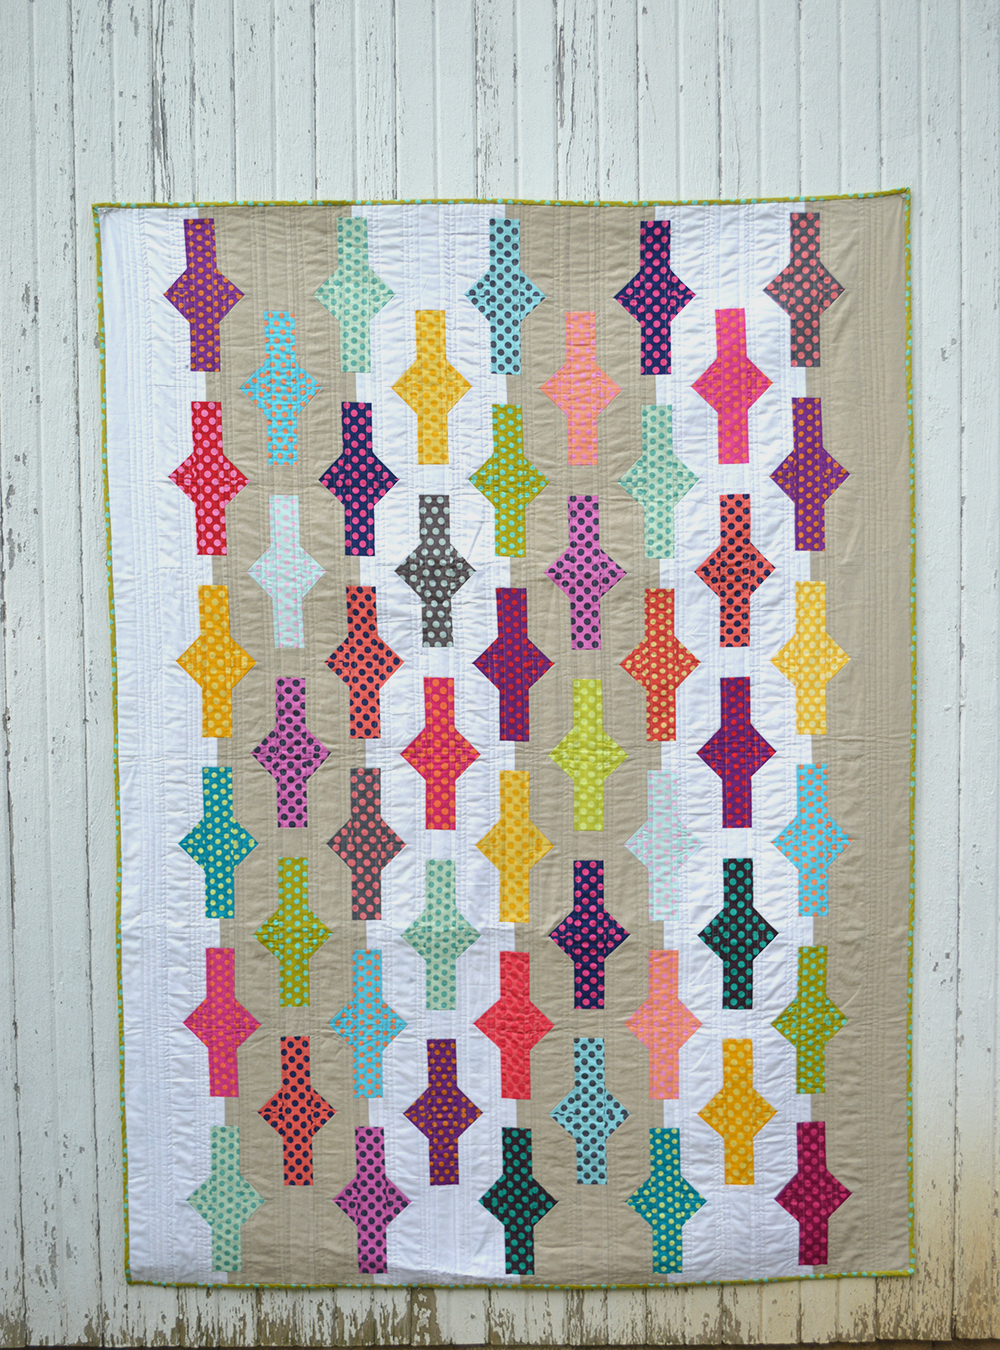 Batons quilt, handmade, unique quilt for sale by Color Girl Quilts